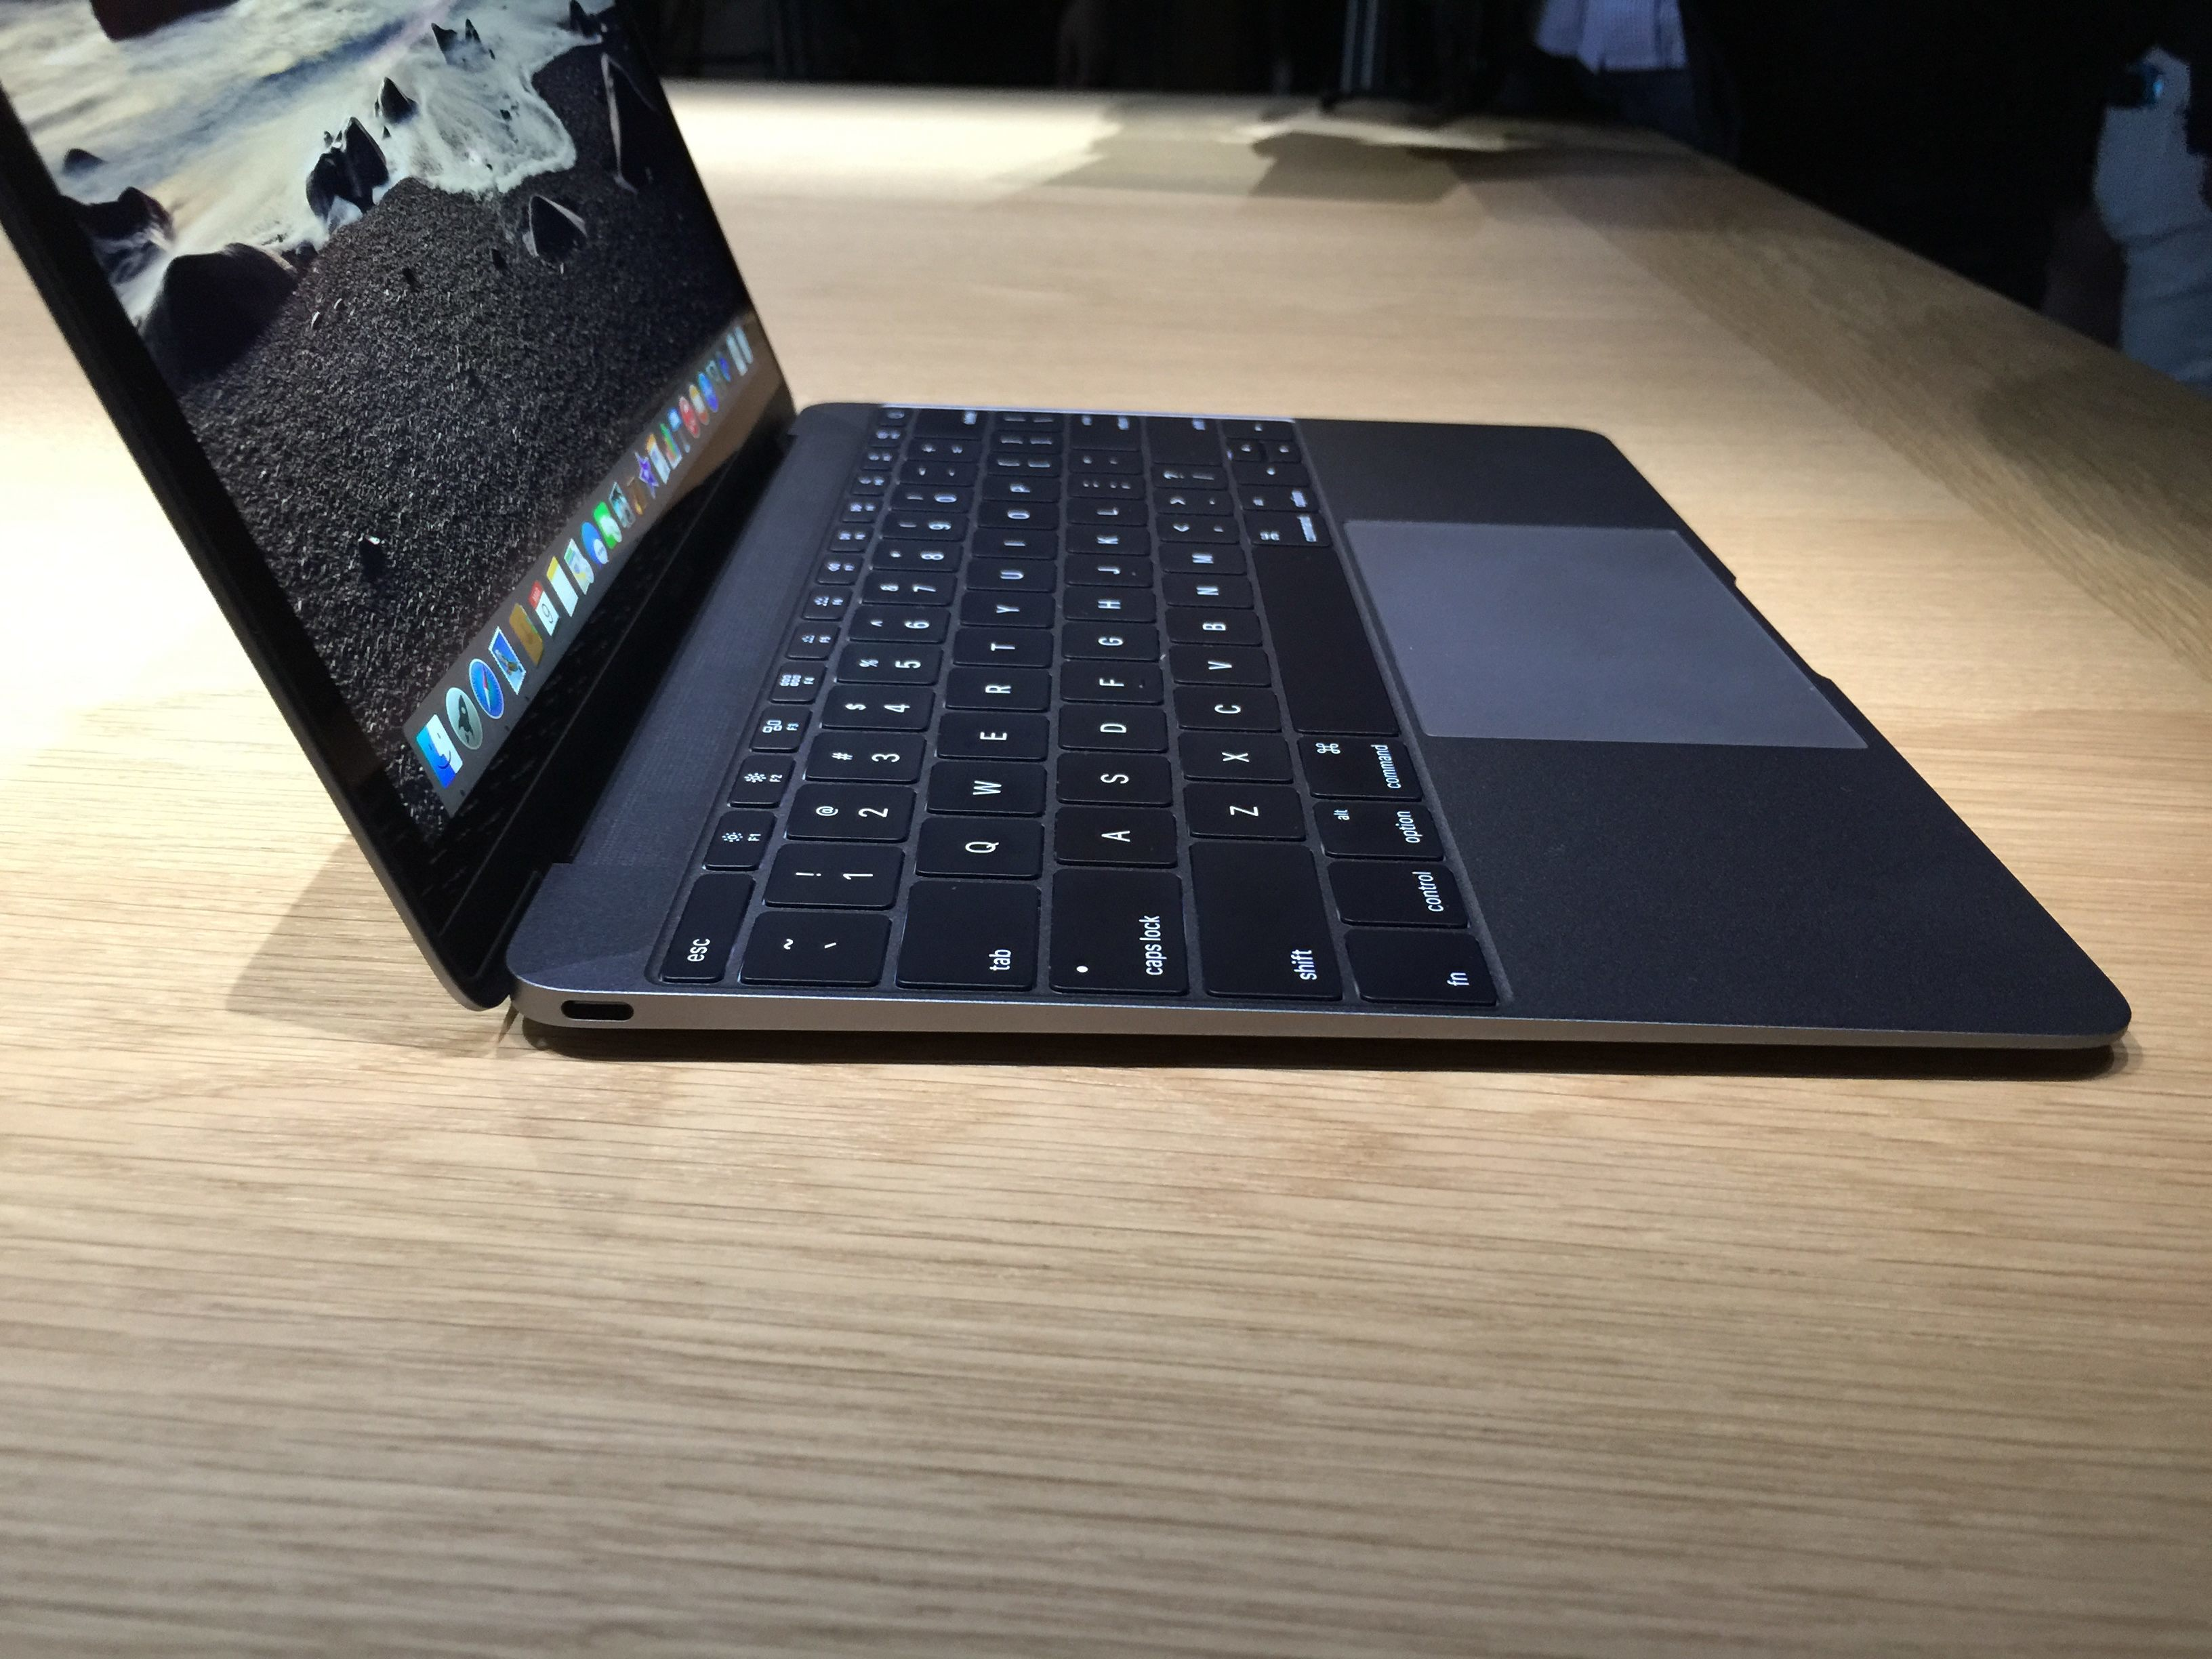 MacBook gris espacial